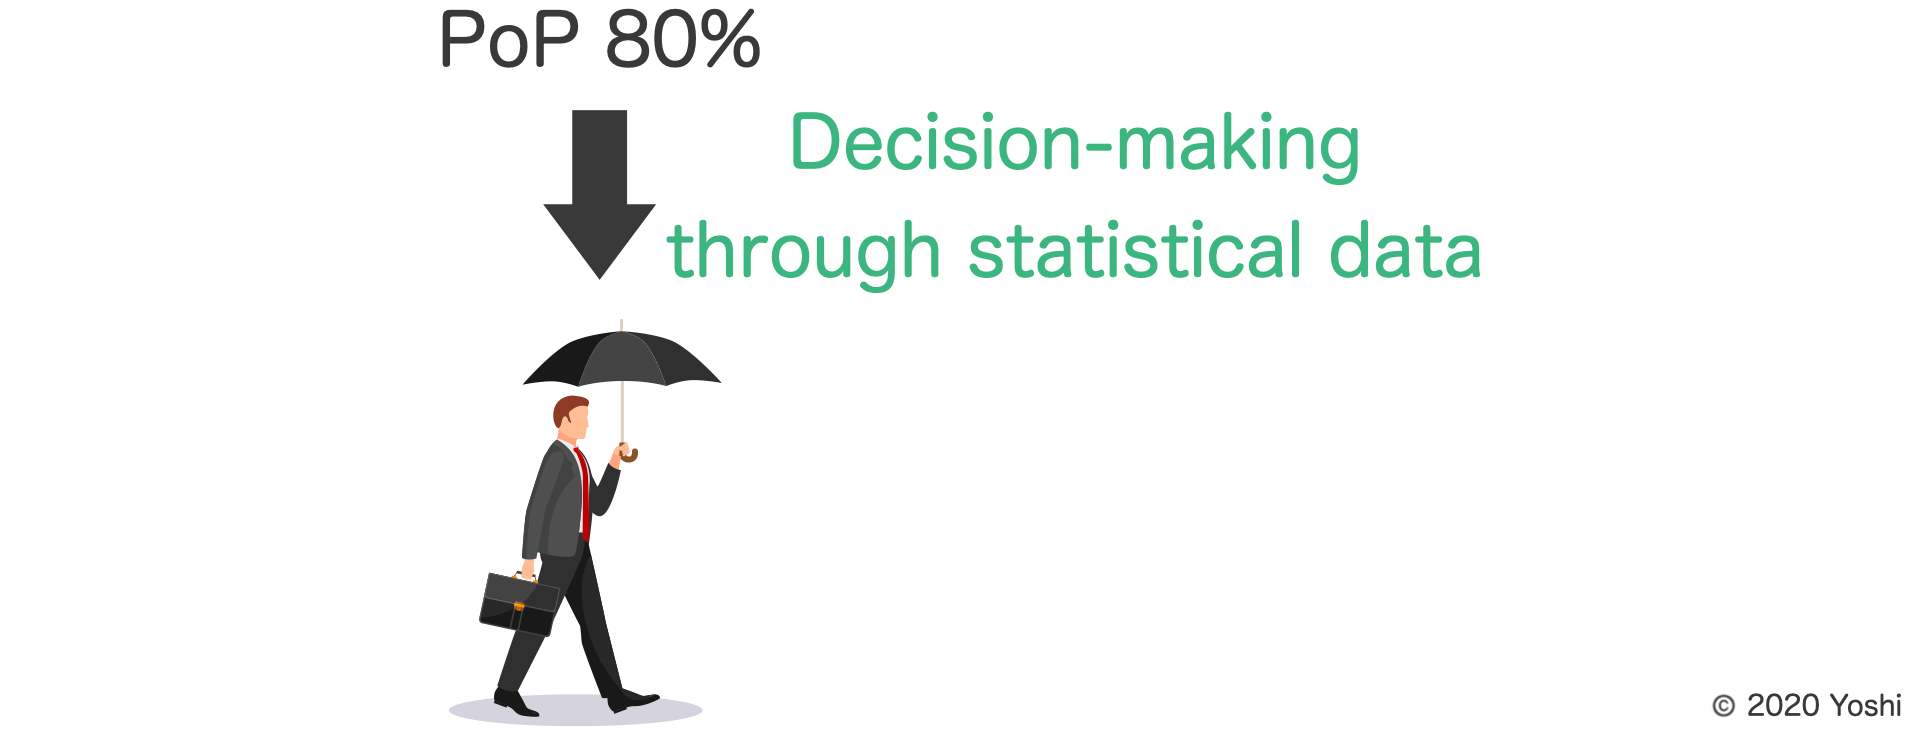 Information Technology is a technology making decision through statistical data